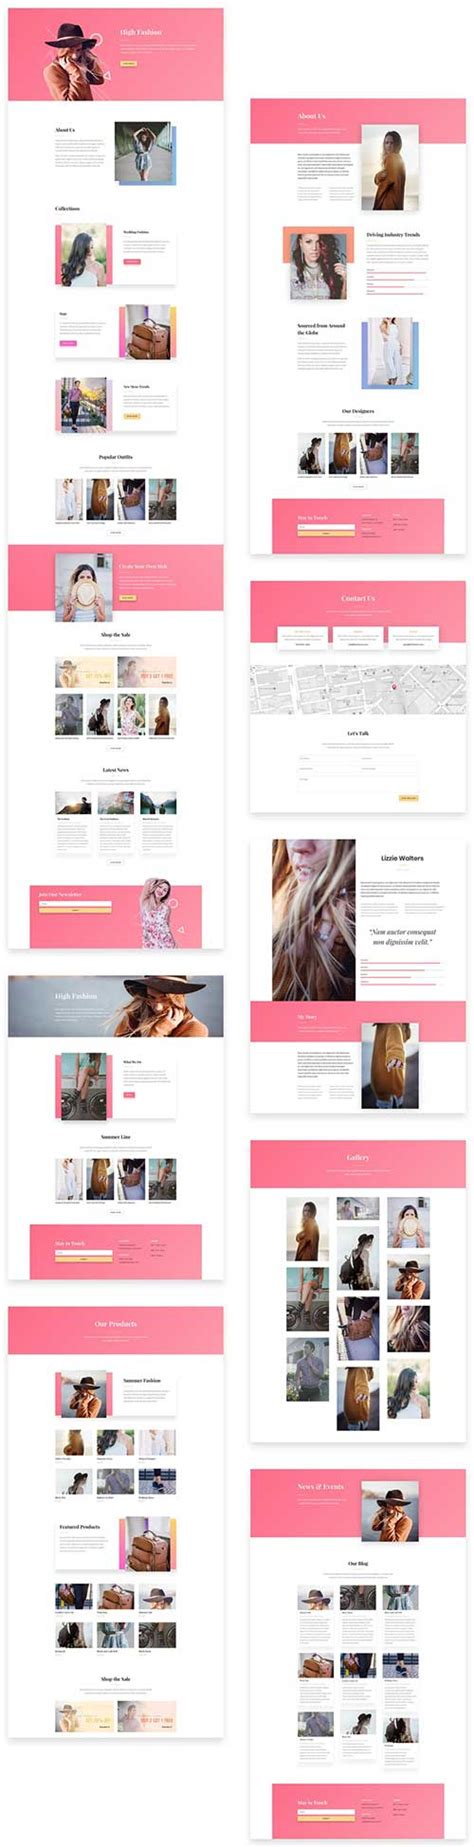 download layout divi download free divi theme layout for fashion business